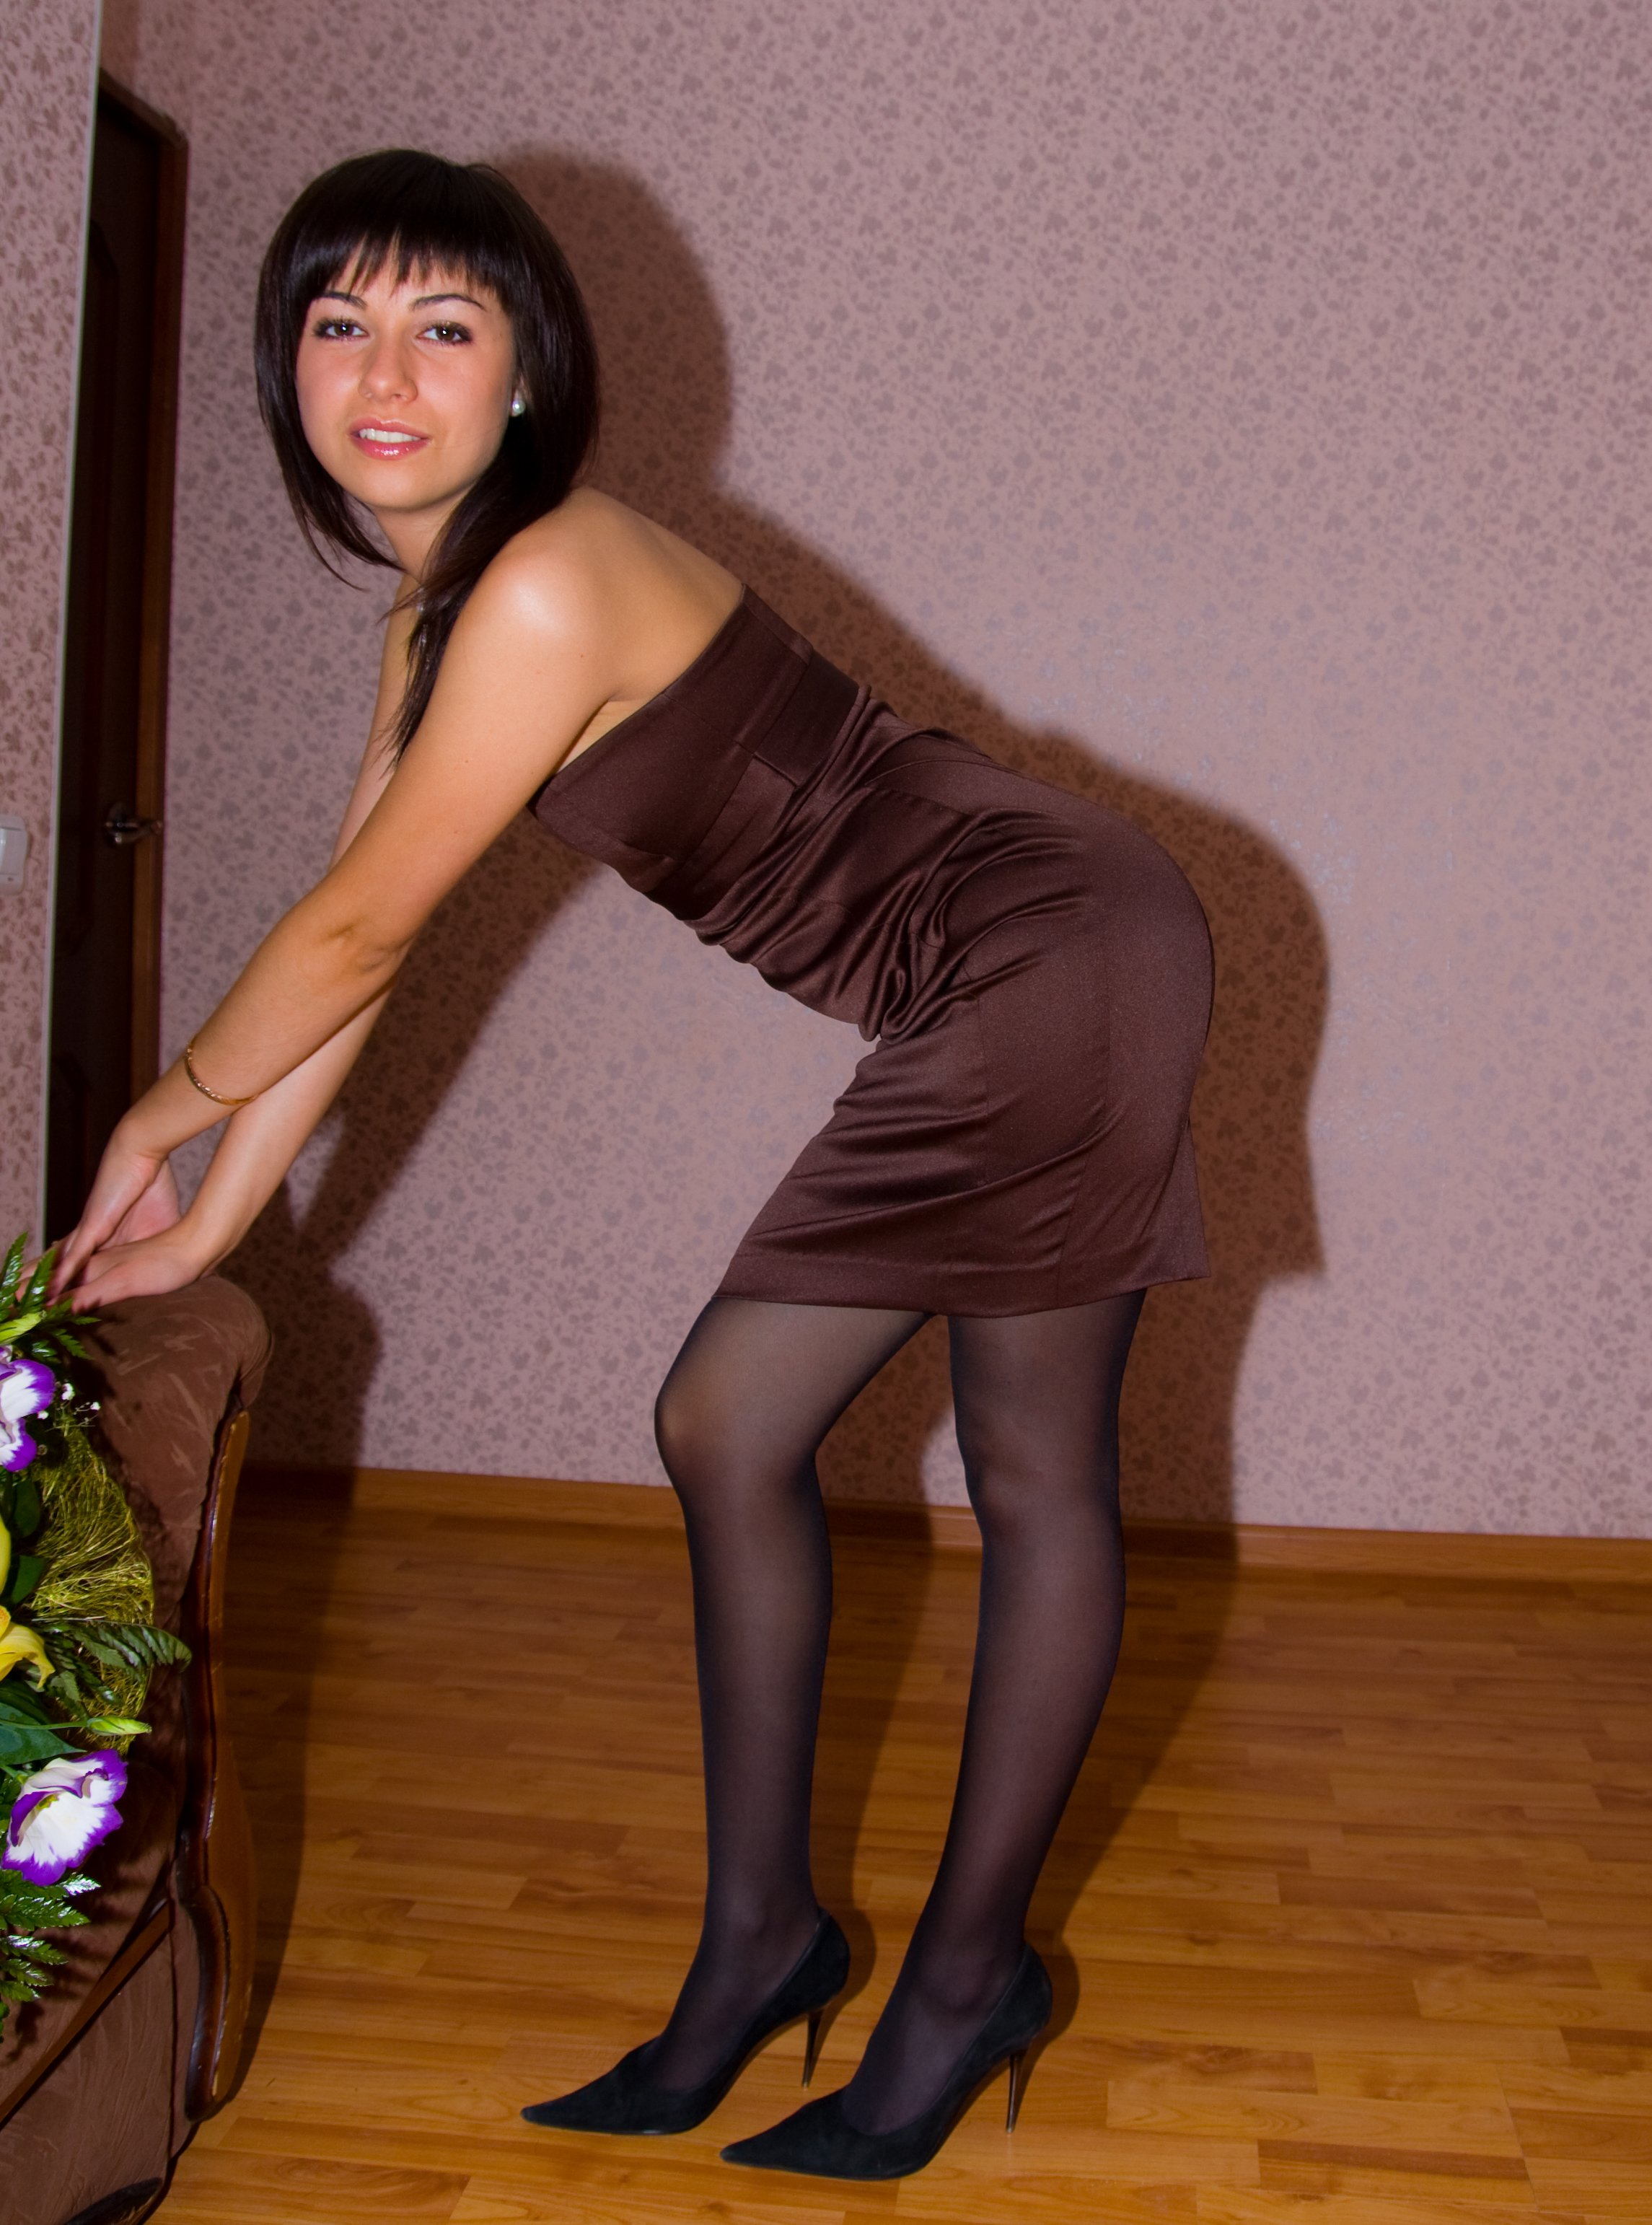 Loading Only Teen Blog Home 45